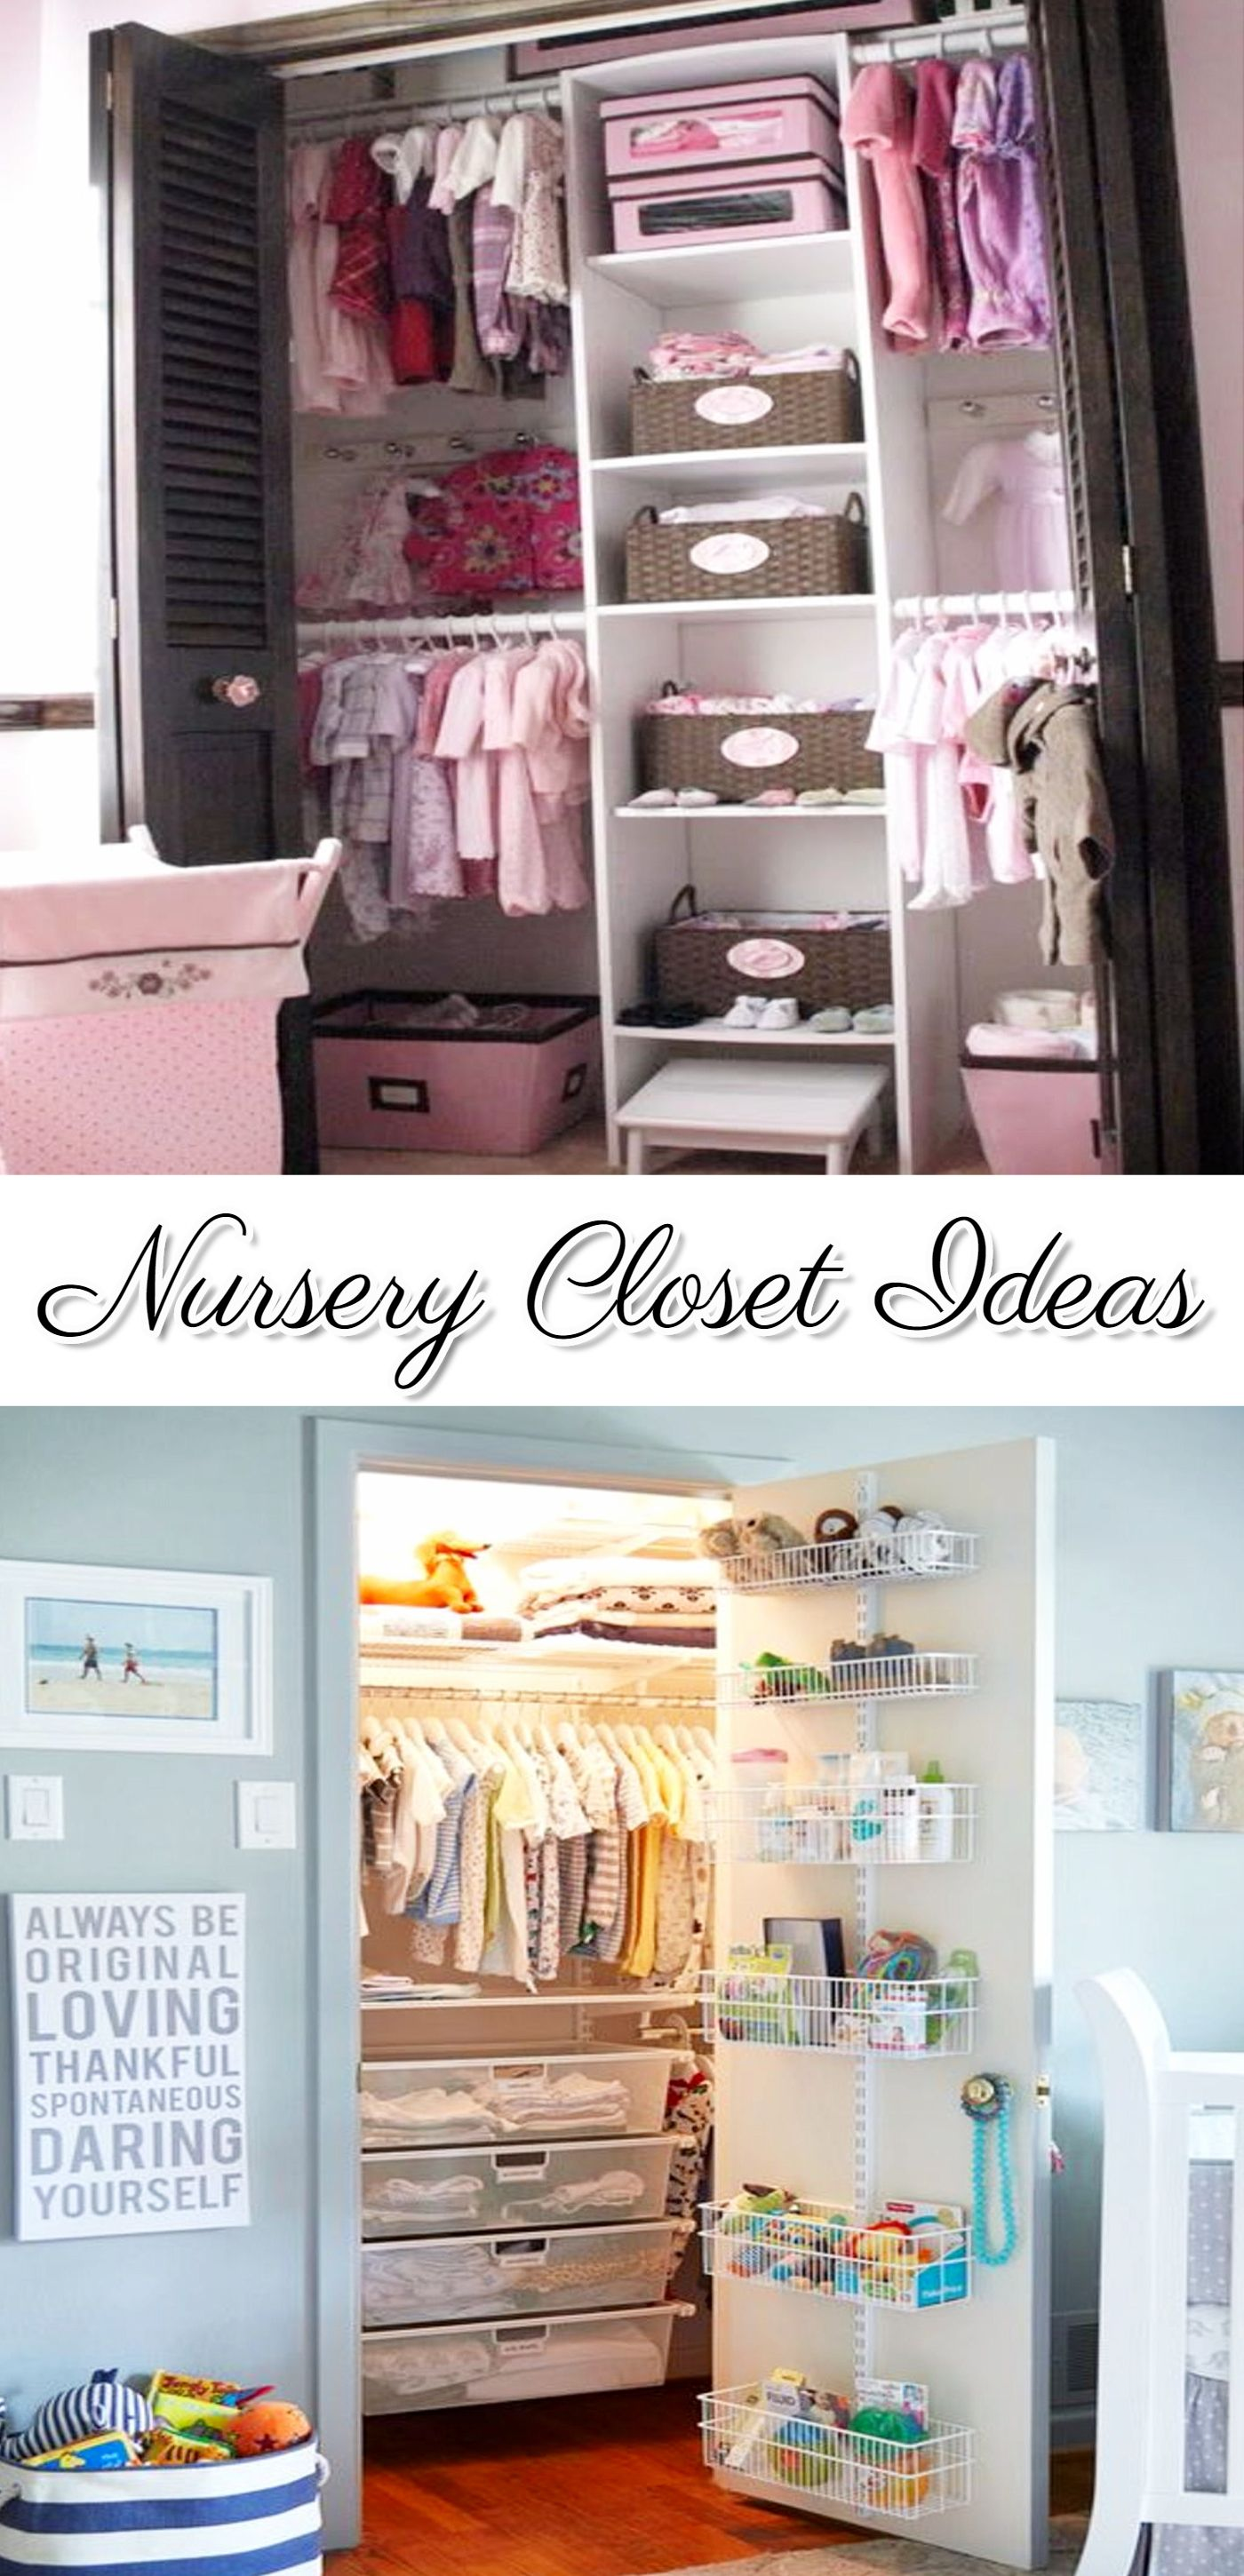 organized soon small extra closets the be idea pin shelf baby in added great our nursery an closet for to